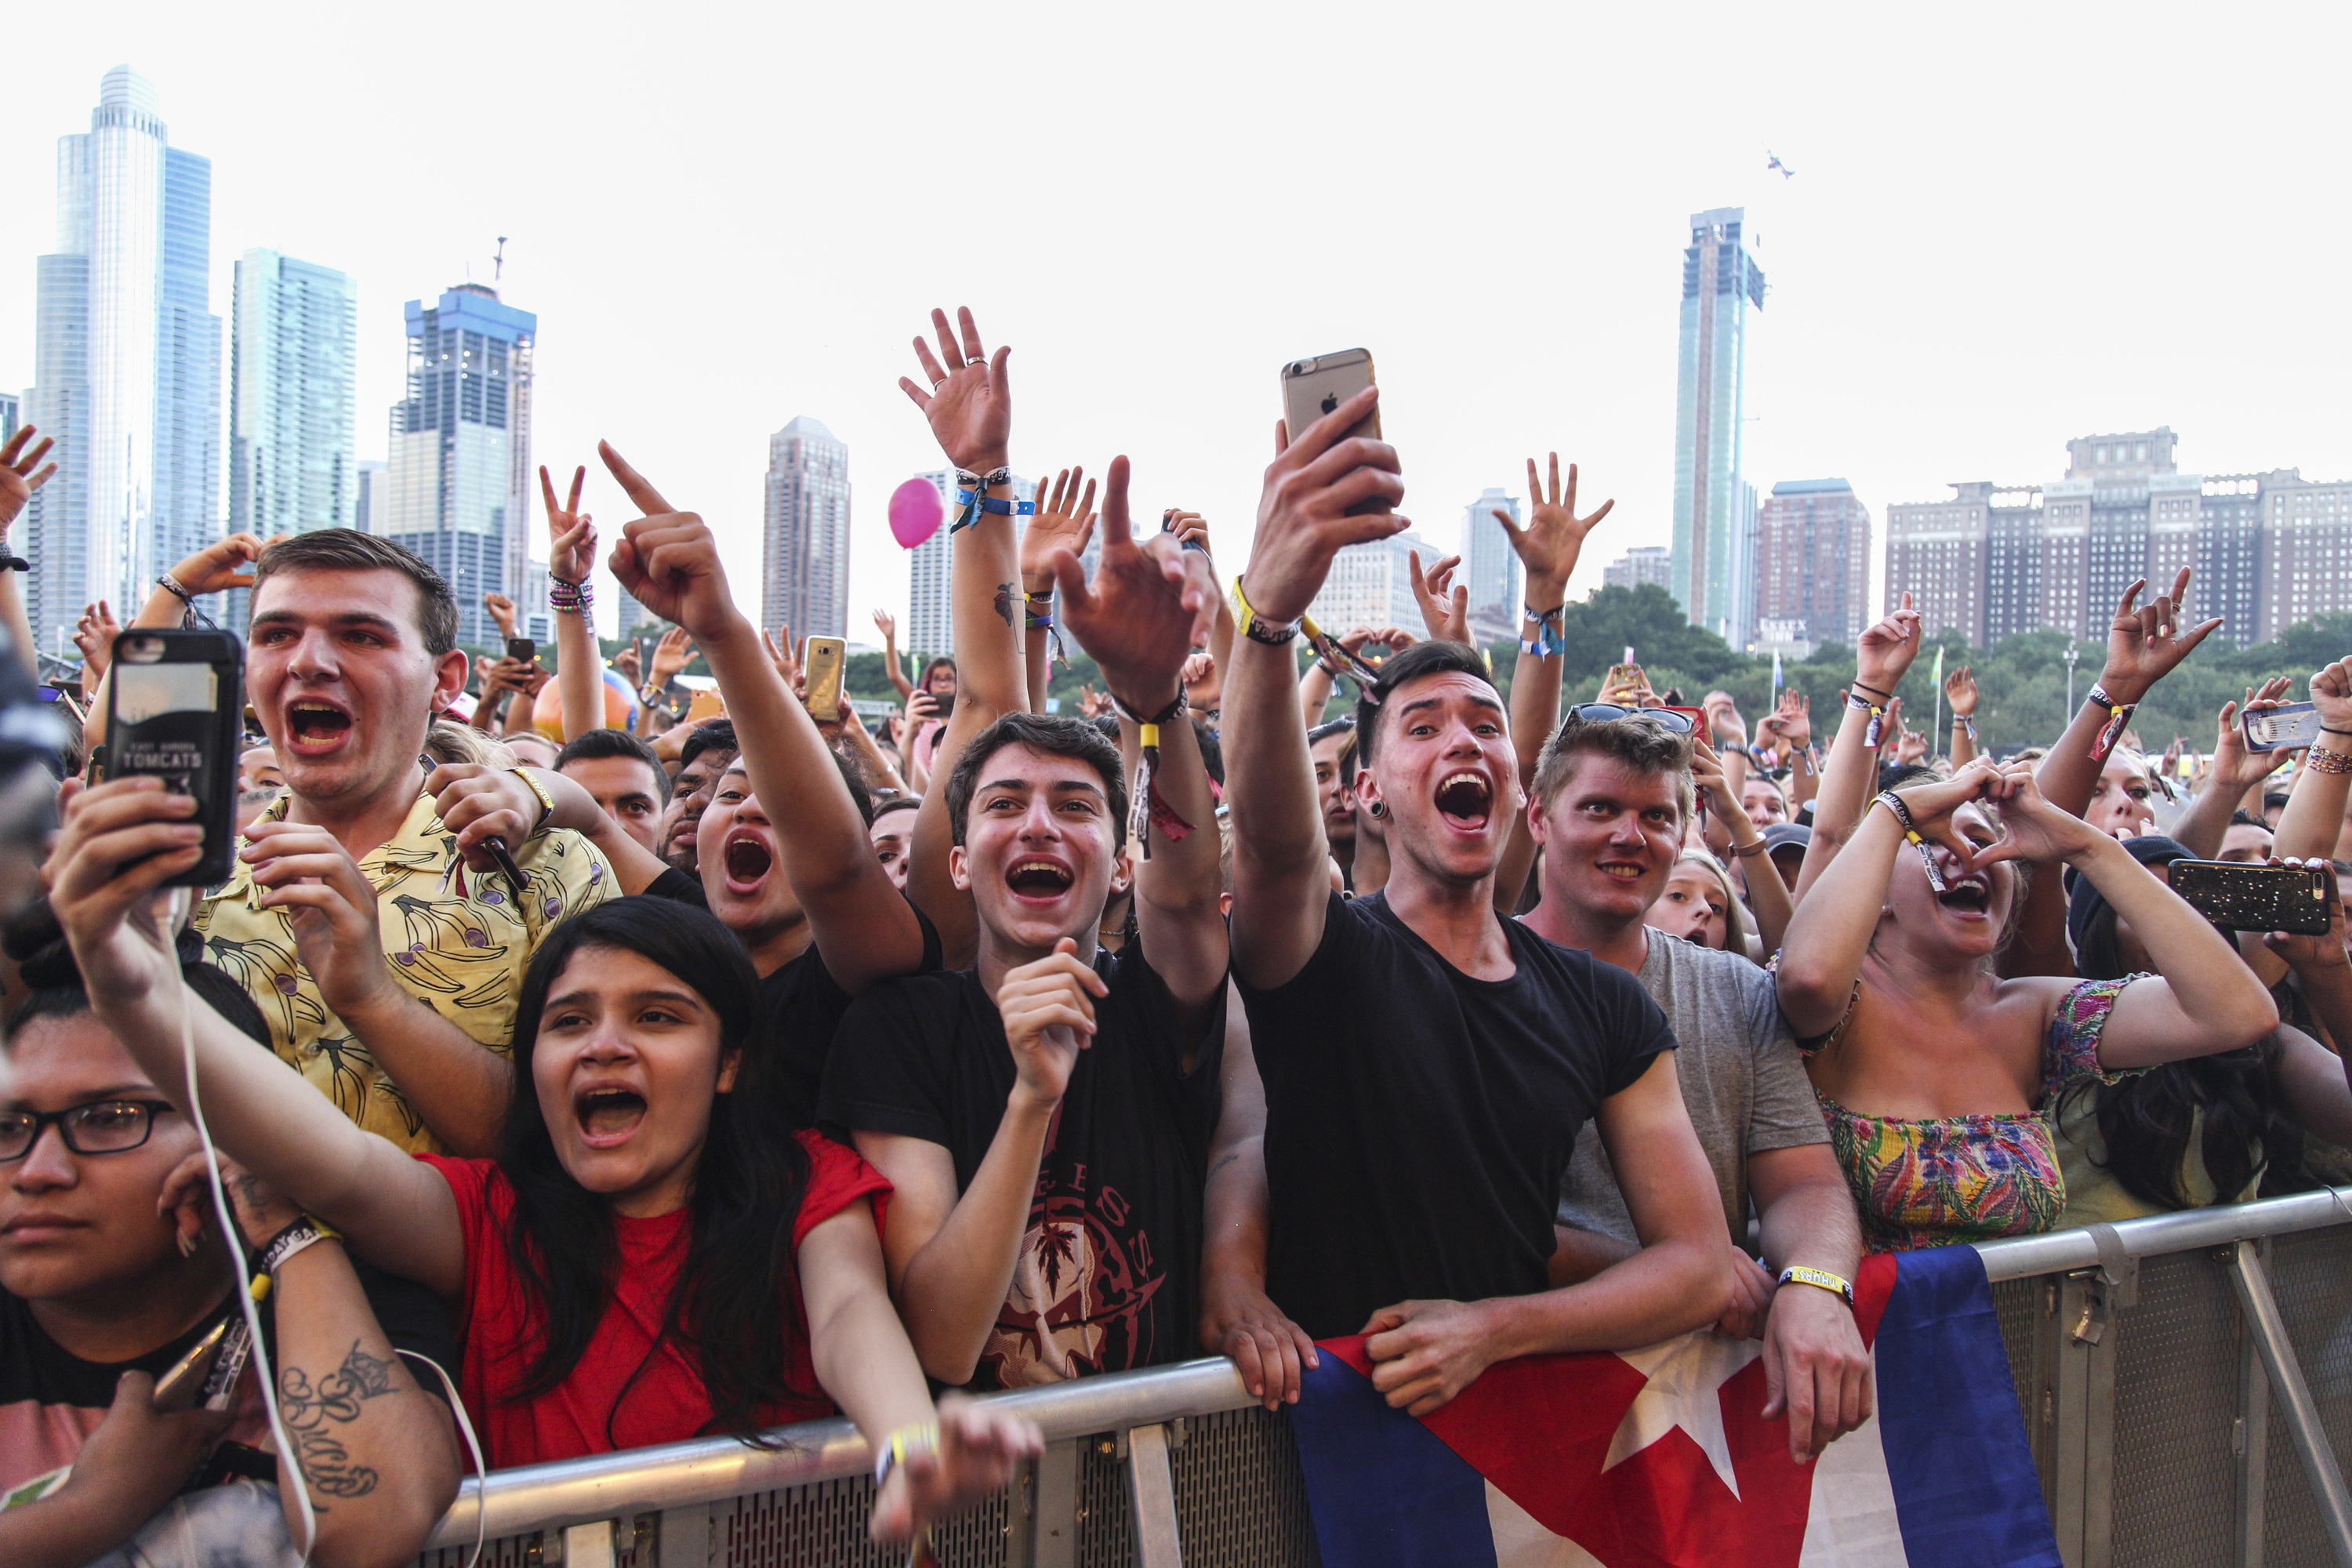 The five best things we saw on Thursday at Lollapalooza